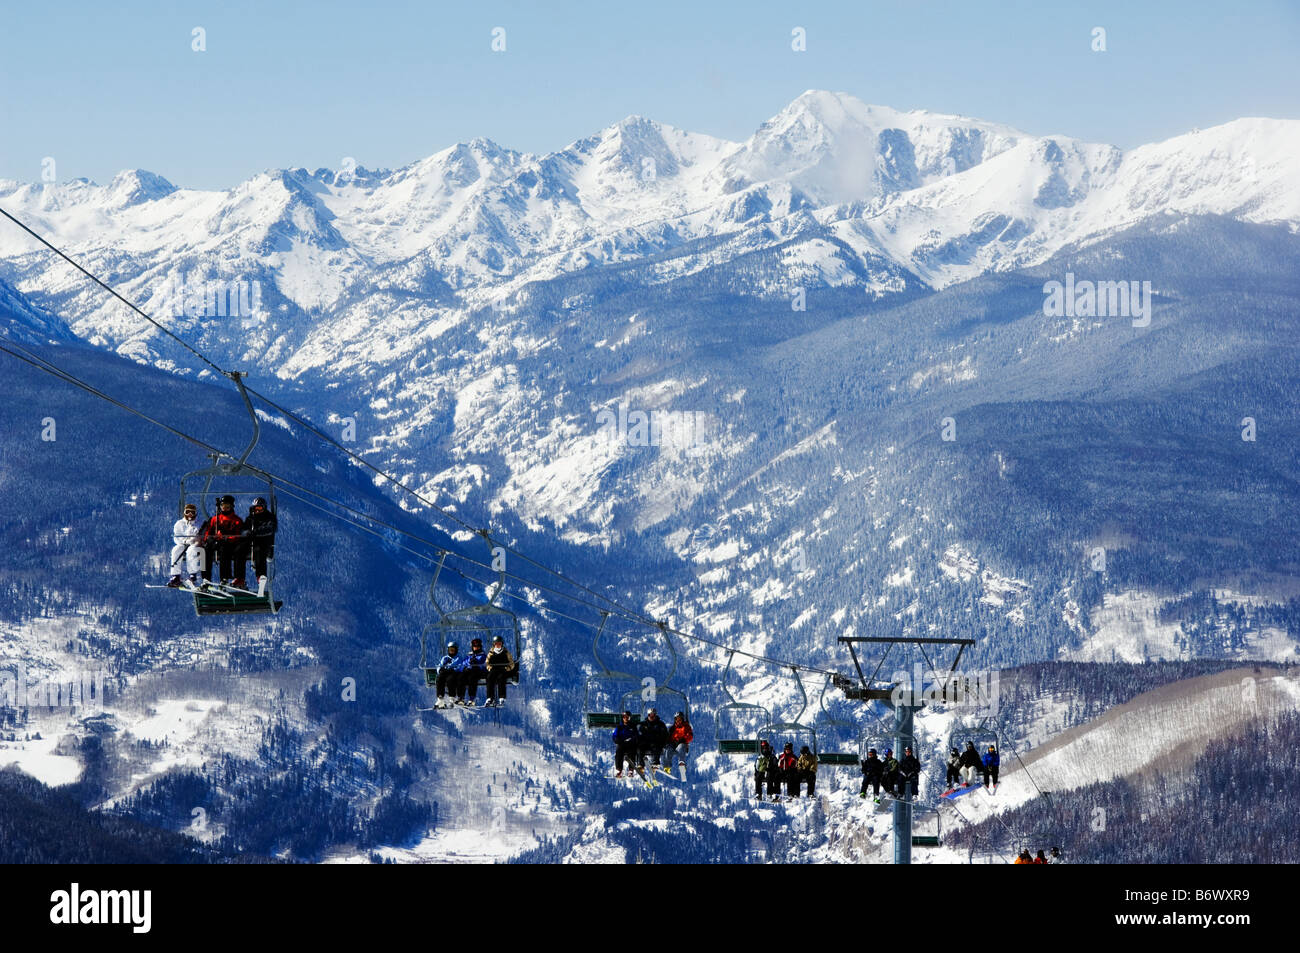 USA, Colorado, Vail Ski Resort. Skiers being carried on a chair lift in Vail back bowls - Stock Image